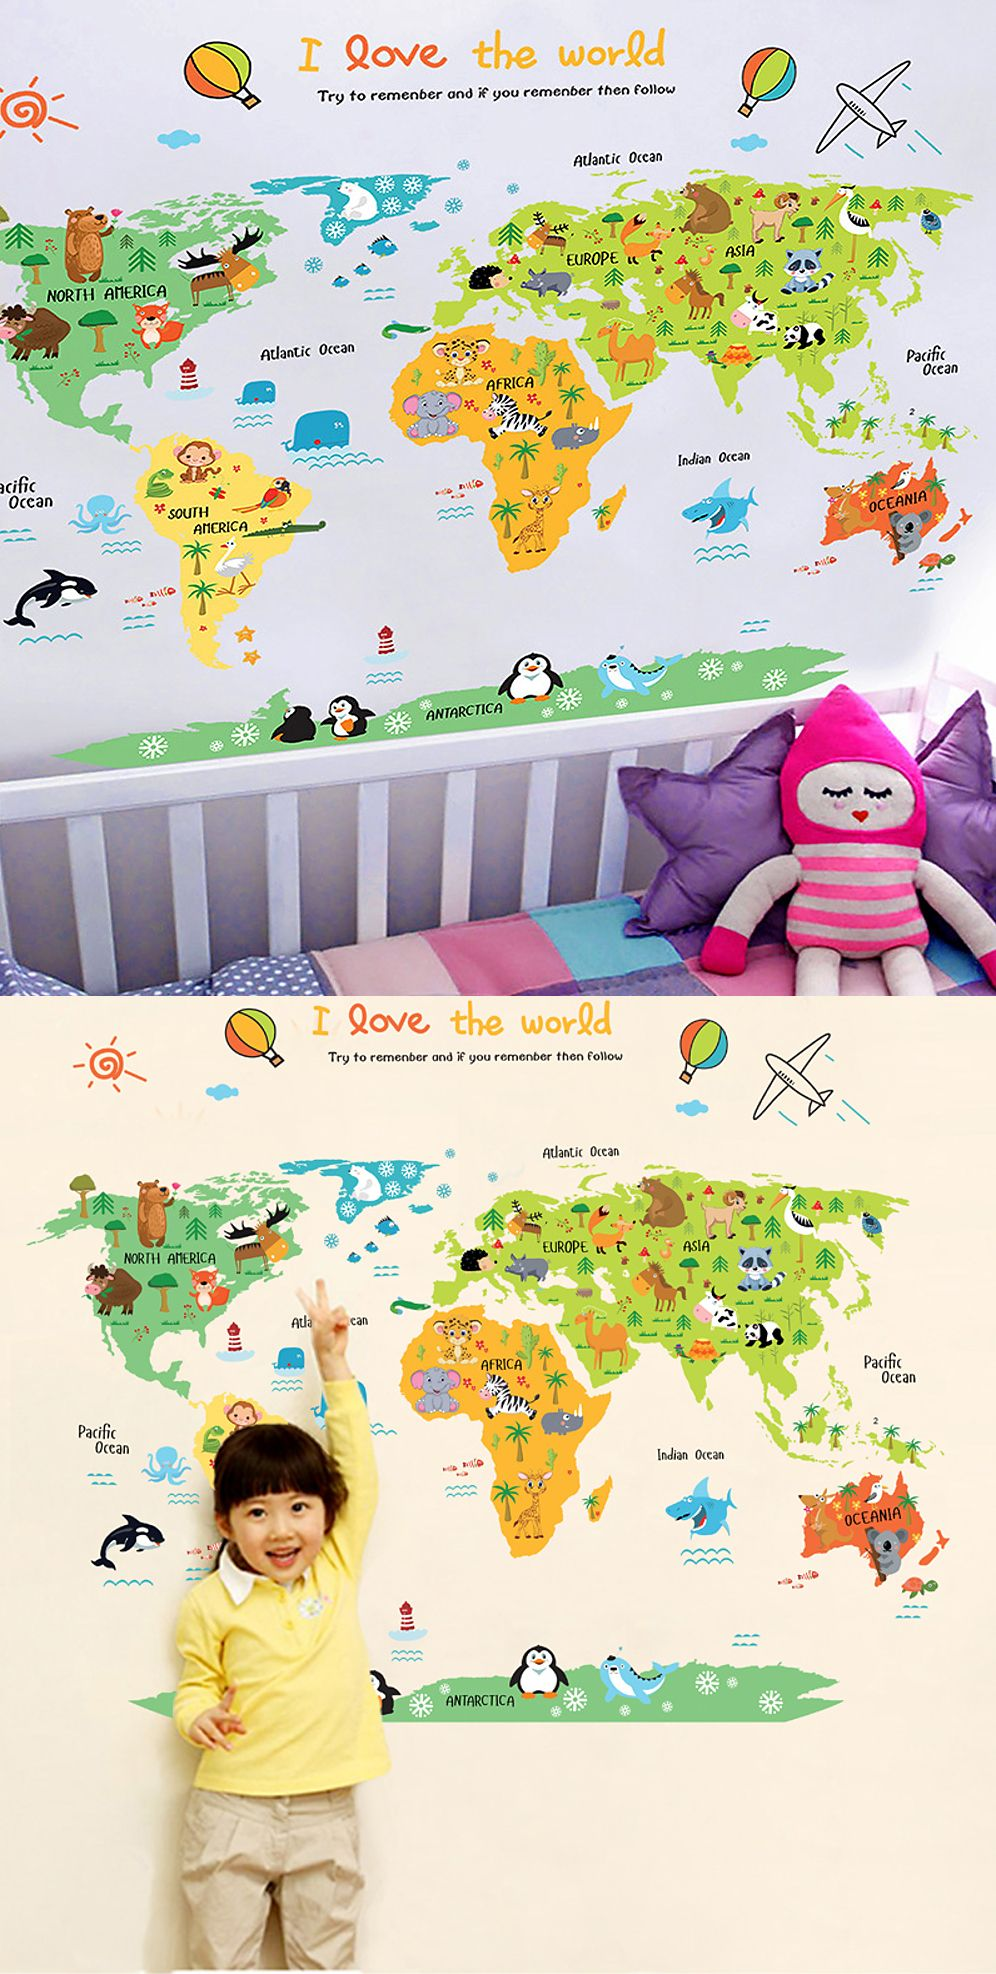 Cartoon World Map Diy Self Adhesive Vinyl Wall Stickers Vinyl Wall Stickers Wall Stickers Bedroom Adhesive Vinyl